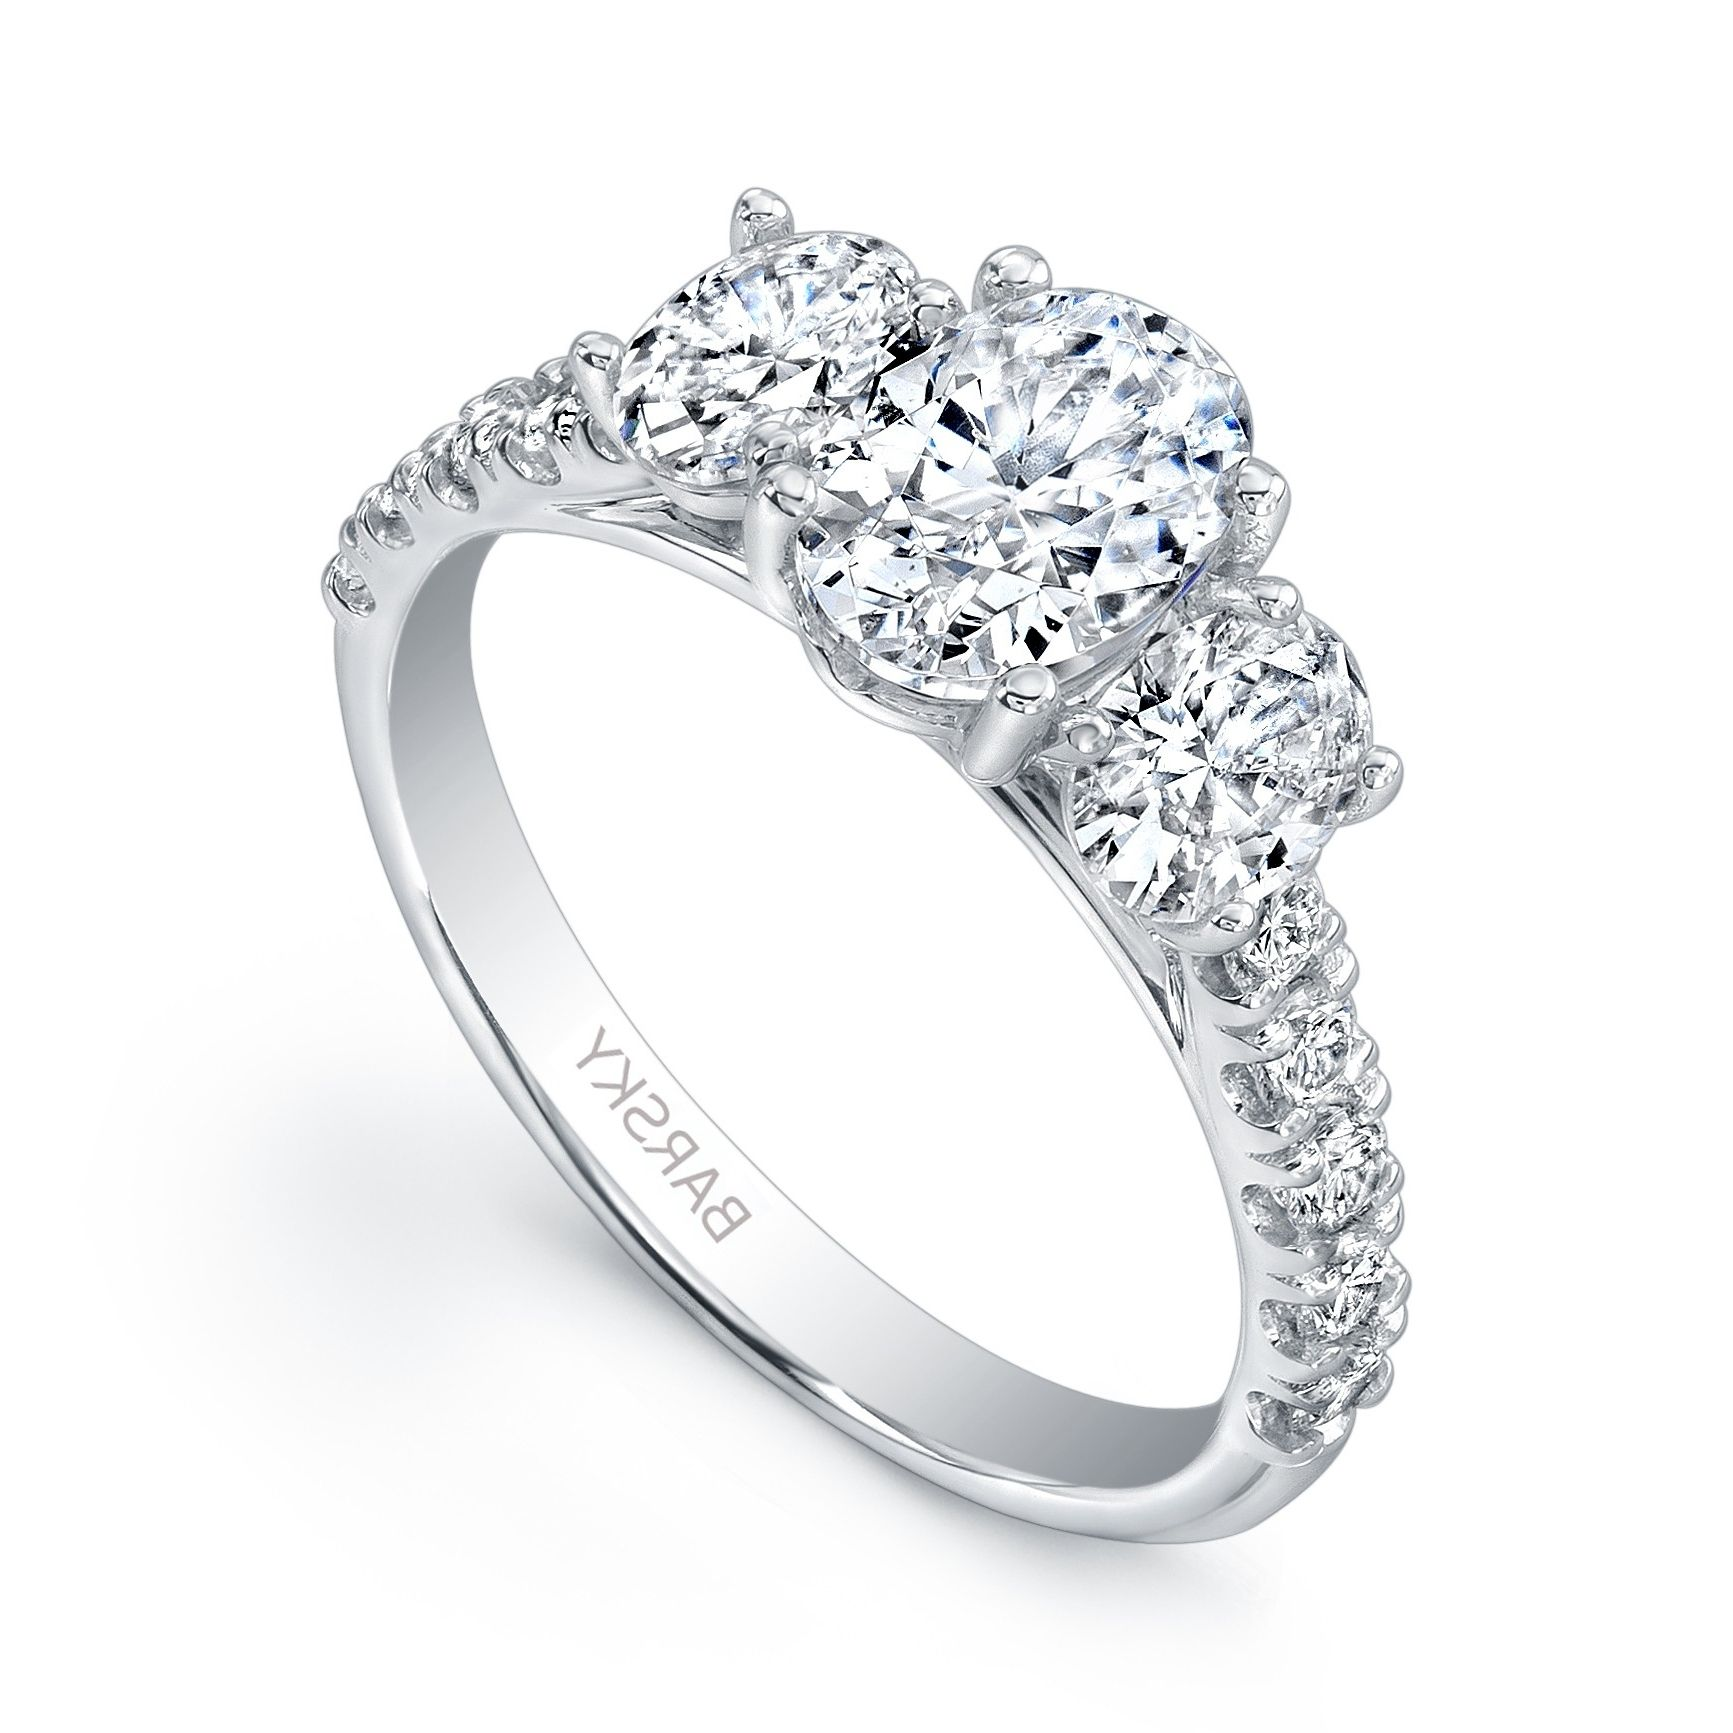 ring us jewellery rings best types inspirations pics jewellry website settings beautiful new of luxury wedding diamond